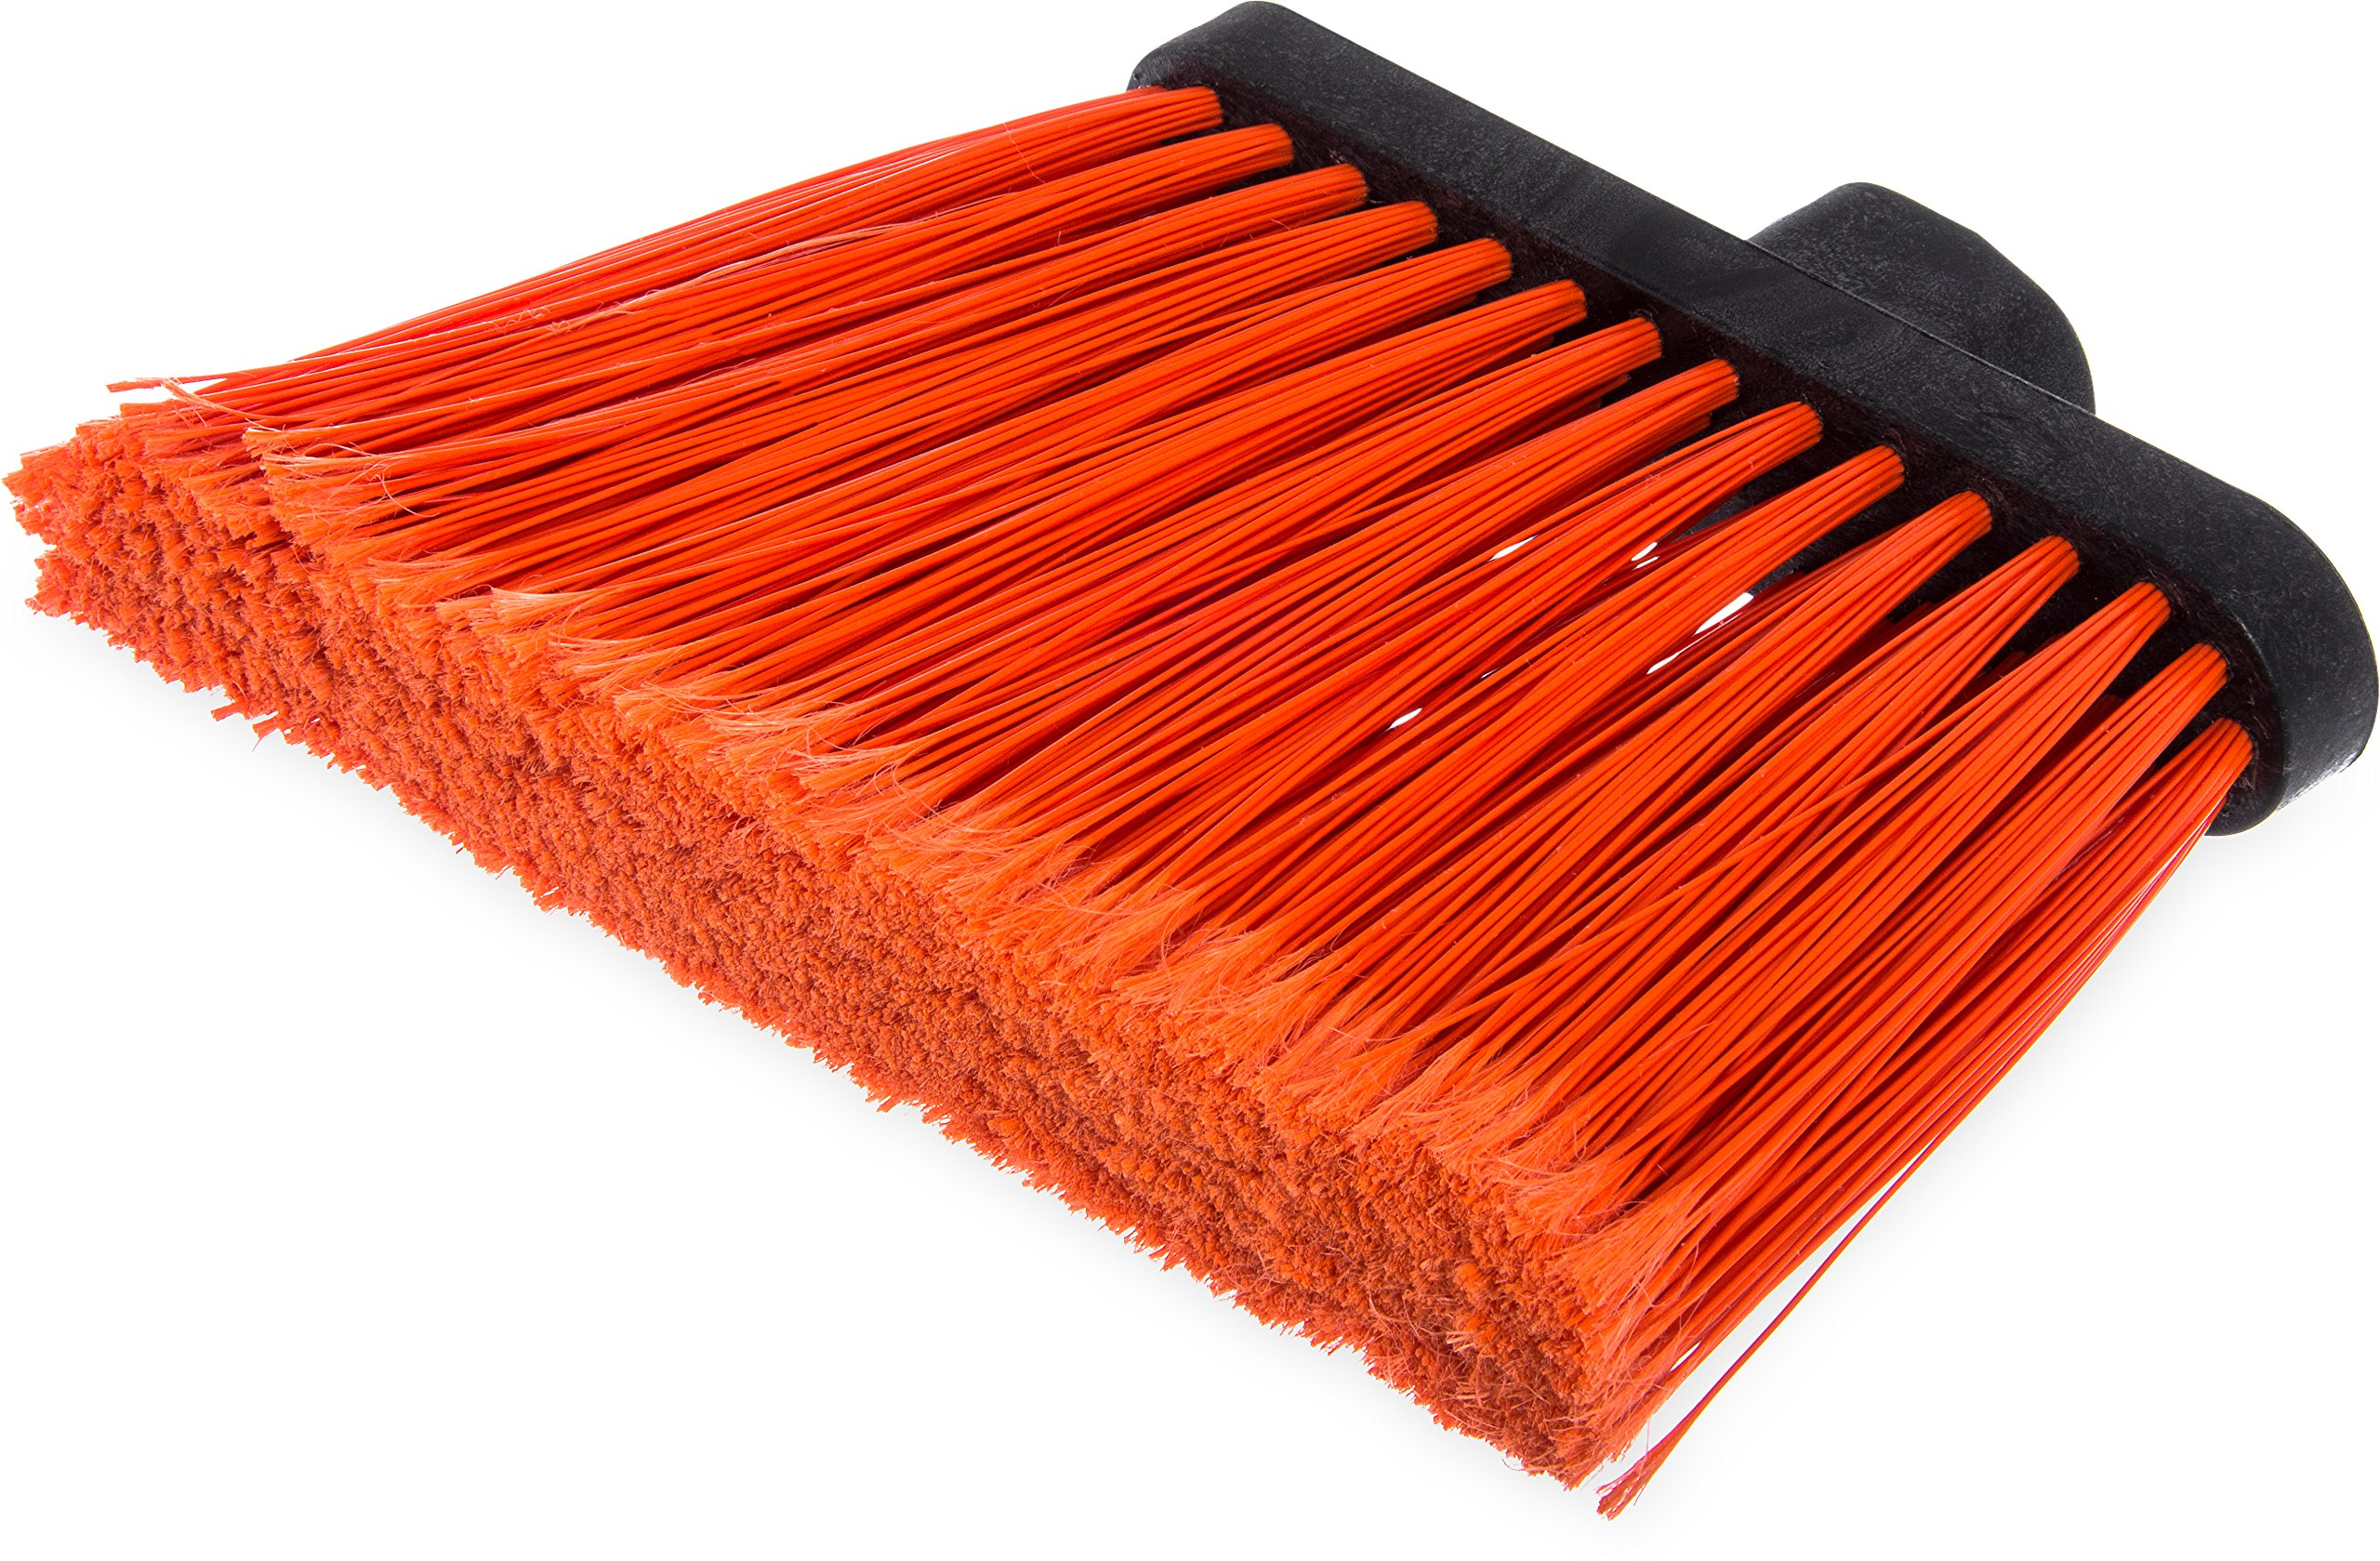 Carlisle 3686724 Duo-Sweep Duo-Sweep Flagged Angle Broom Head Only, 12'', Orange